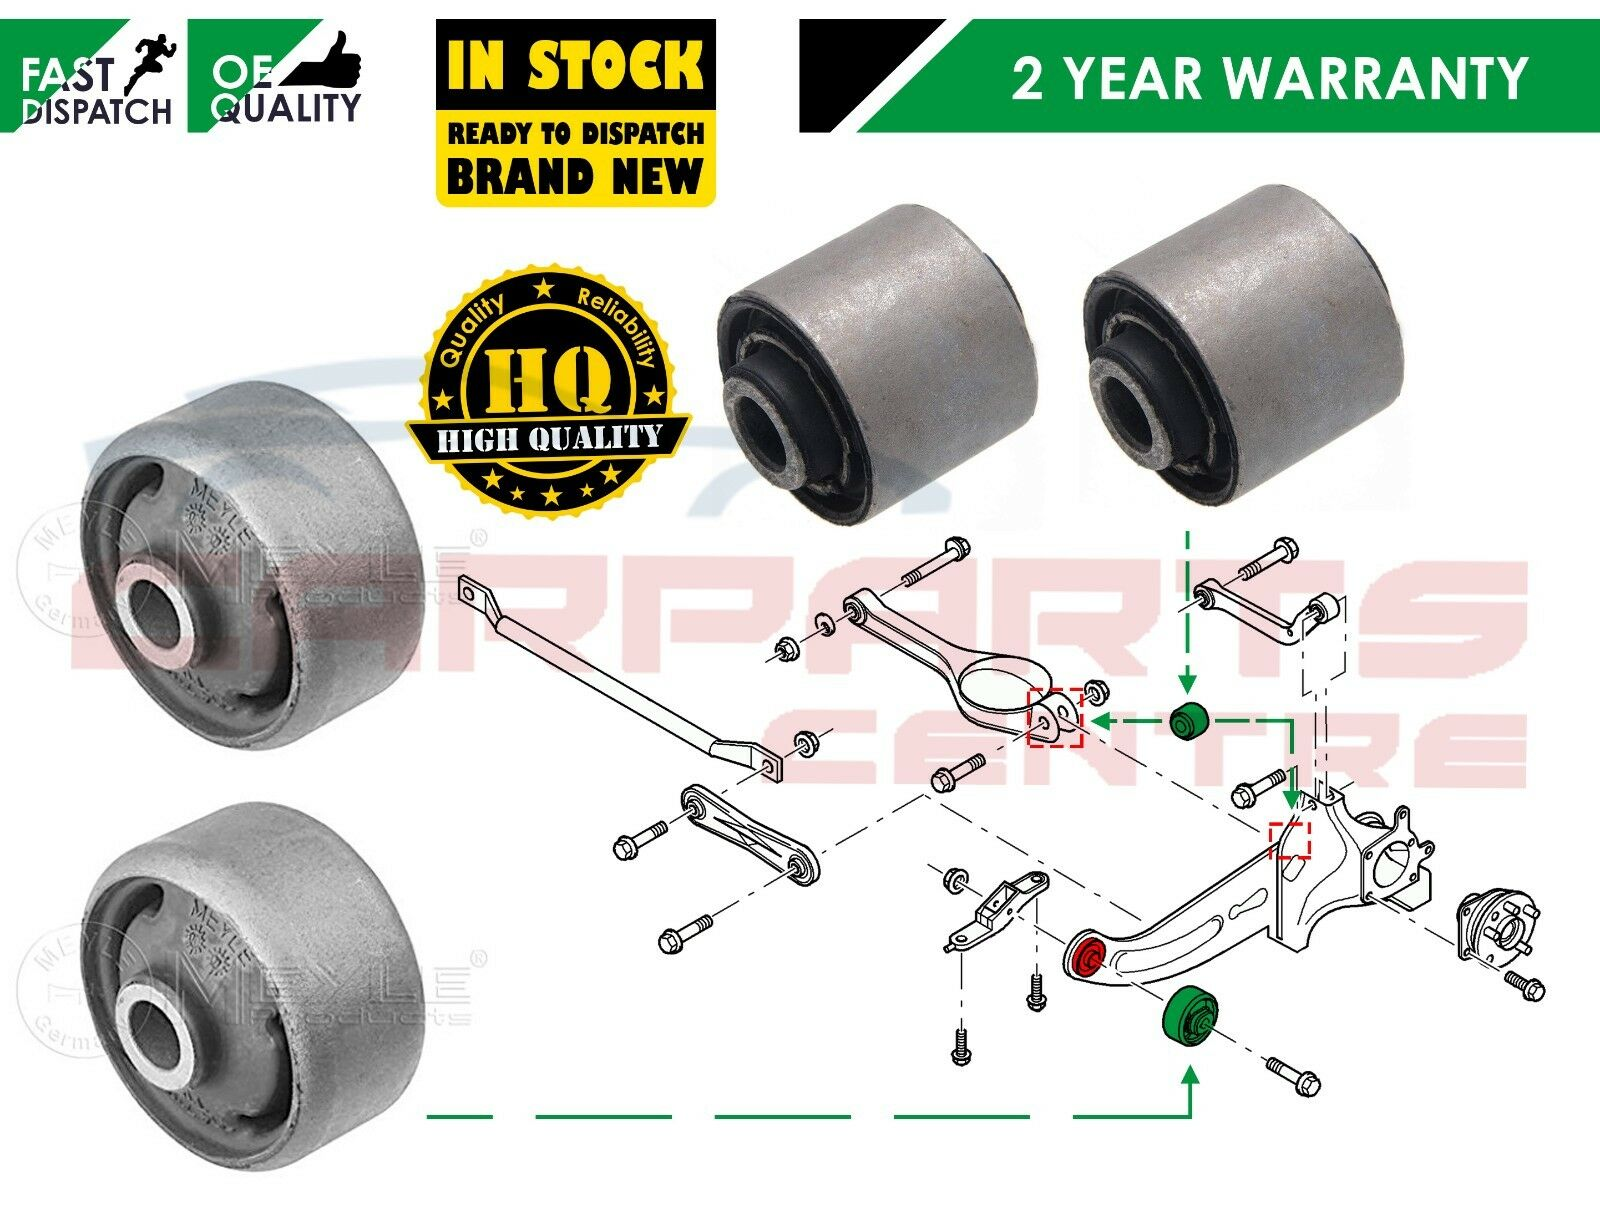 Ford Mondeo MK3 Rear Left and Right Sub Frame Bushes SET OF 4